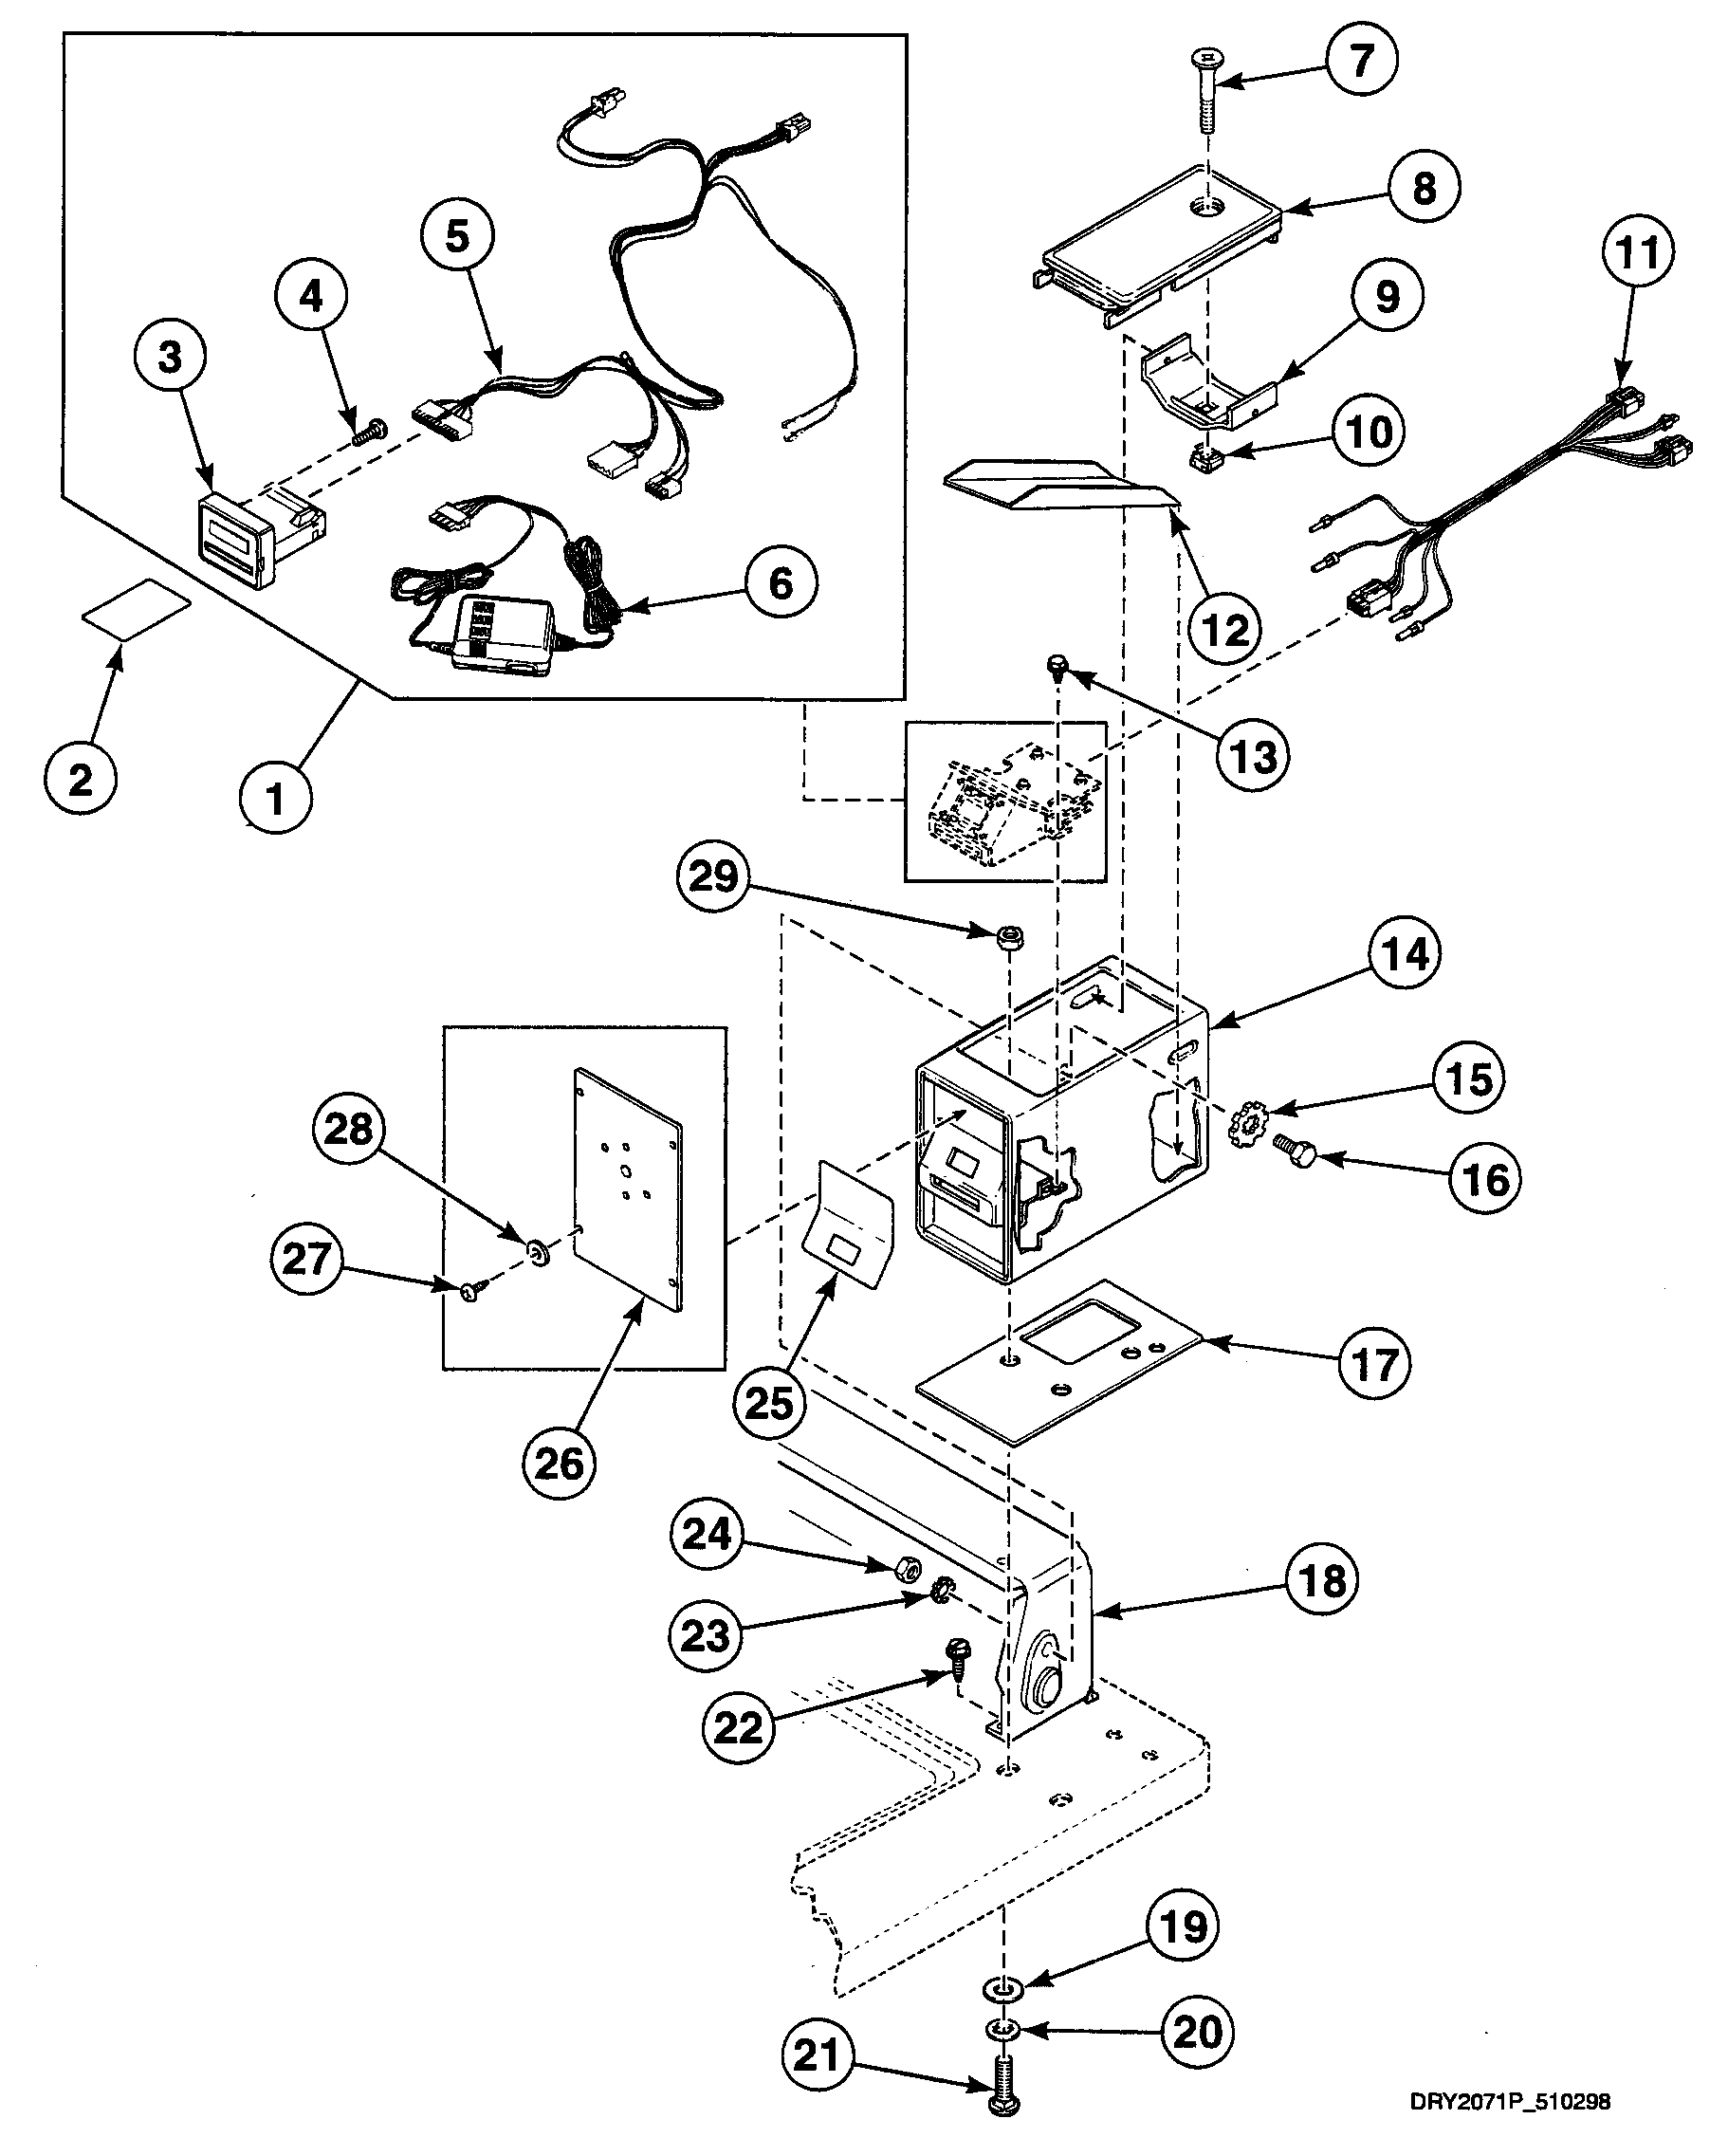 Switch wiring diagram for de walt drill besides gravity furnace wiring diagram in addition furnace control